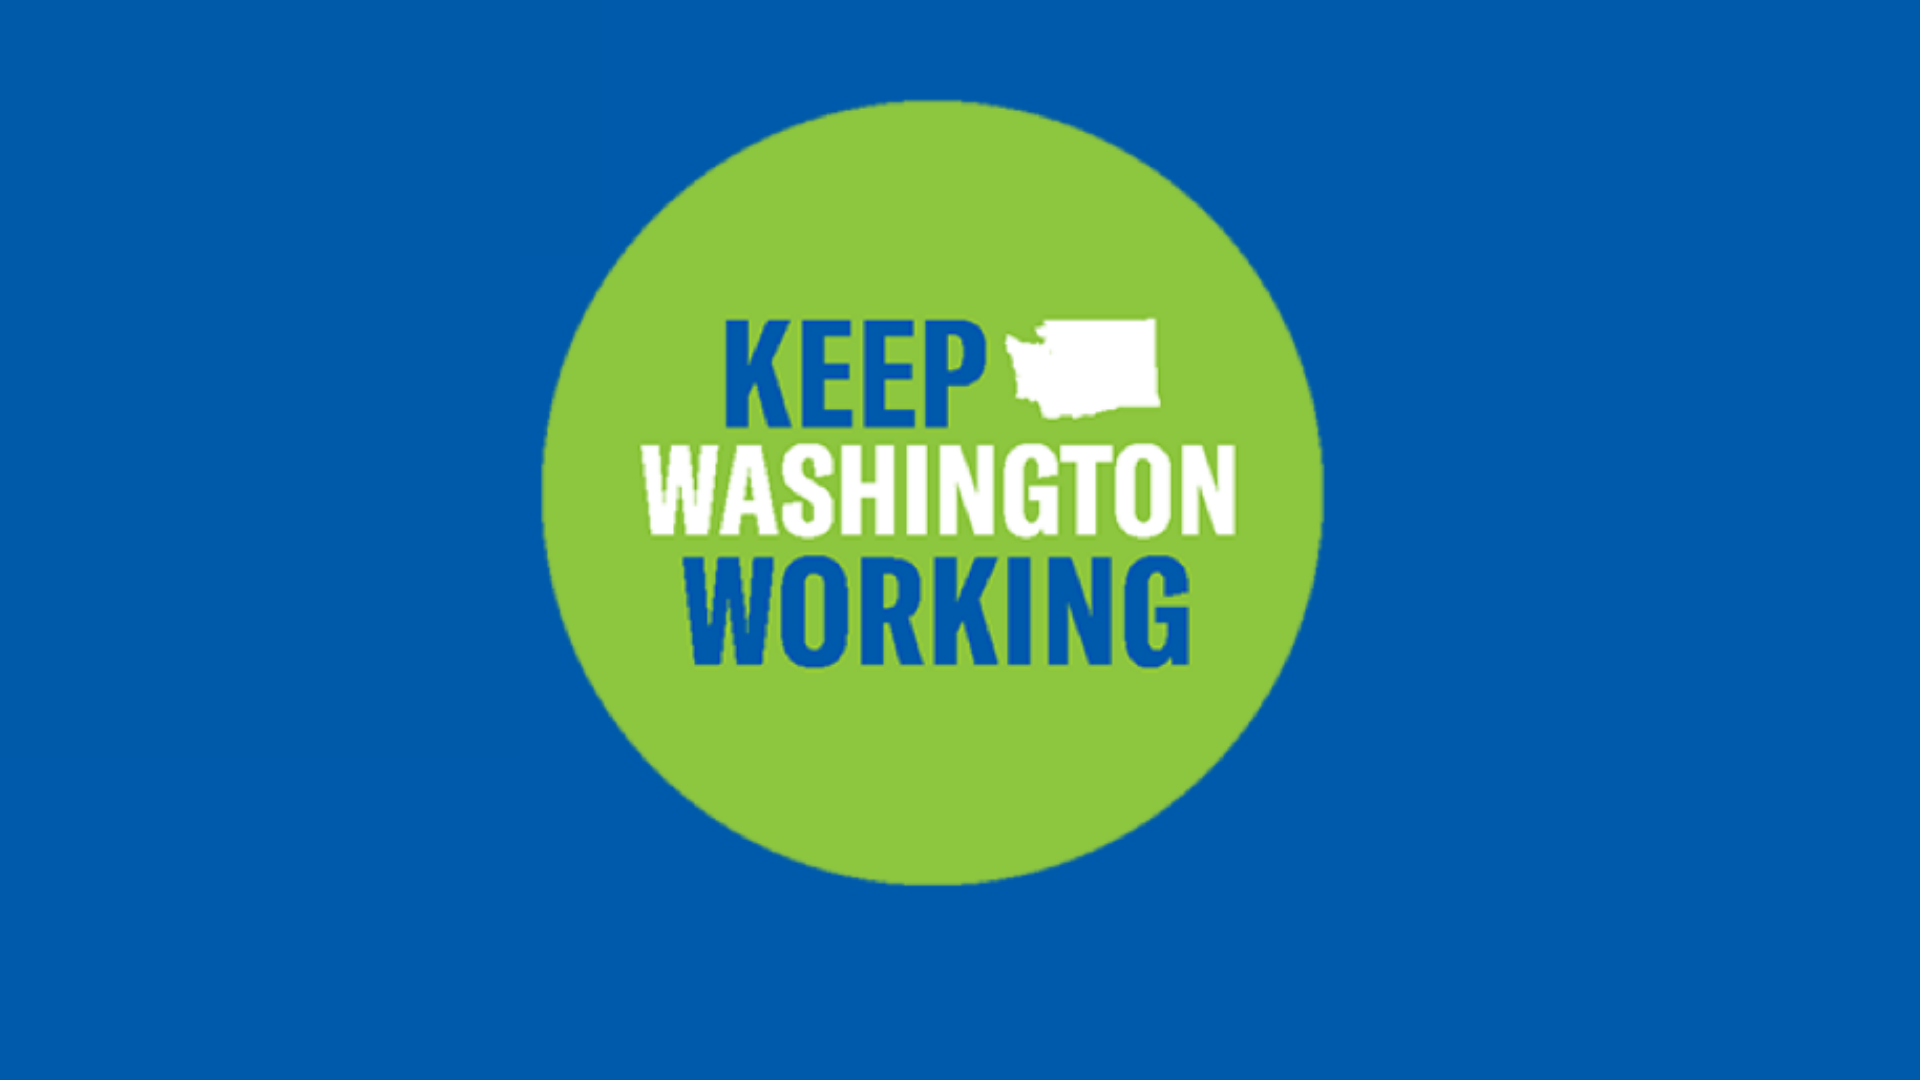 2019 Landmark Civil Rights Law Protects Immigrants & Washington's Economy - Keep Washington Working SB 5497